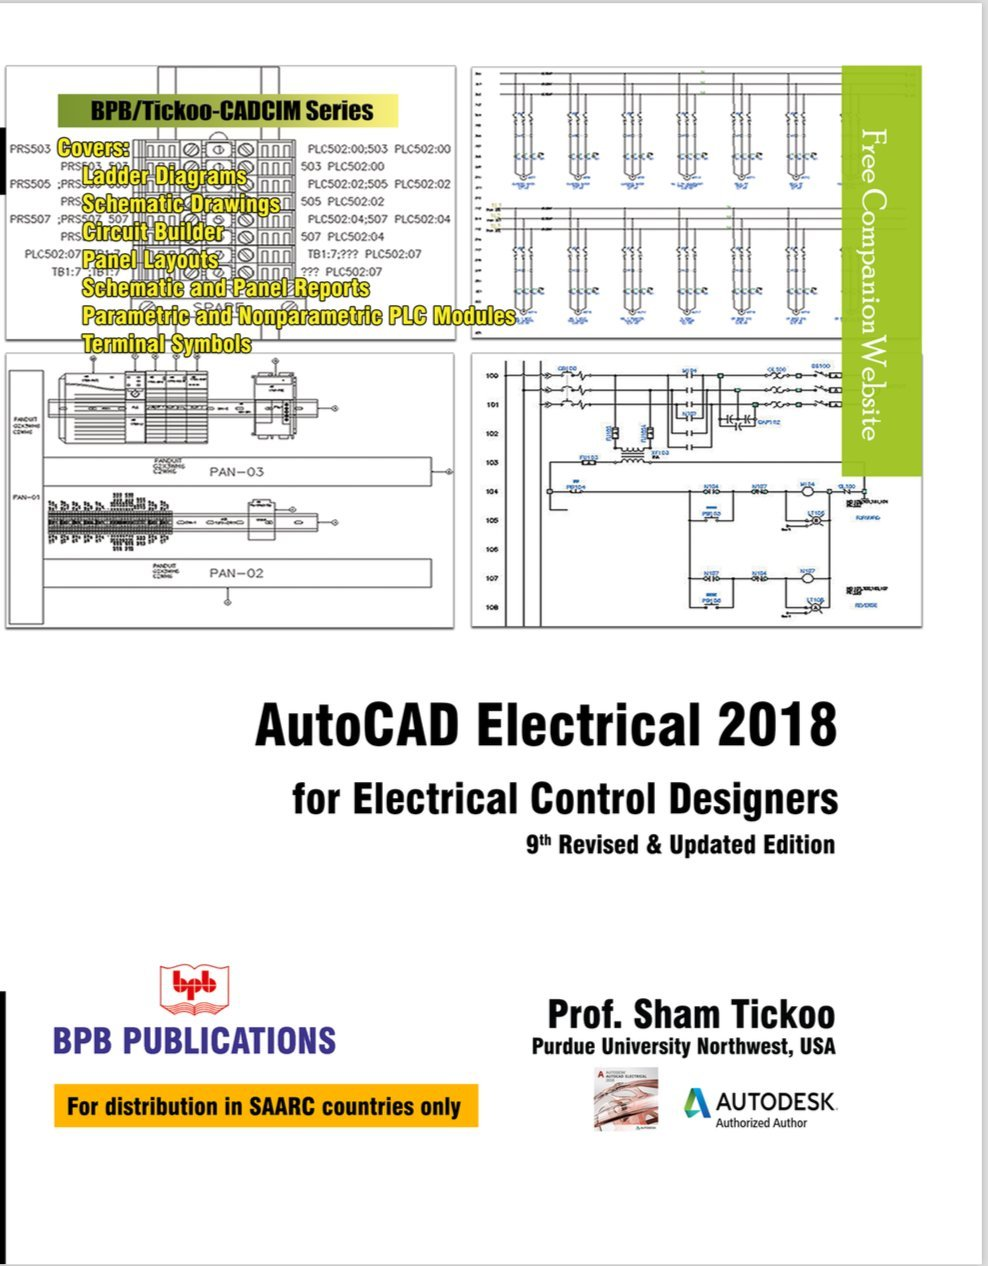 AutoCAD Electrical 2018 For electrical control designers ... on motor control diagram symbols, power panels electrical diagram symbols, control stations drawings, standard control panel symbols, electrical wiring diagram symbols, residential wiring diagram symbols, intermediate symbols, electrical schematic symbols, layout drawing symbols, schematic drawing symbols, motor control schematic symbols,